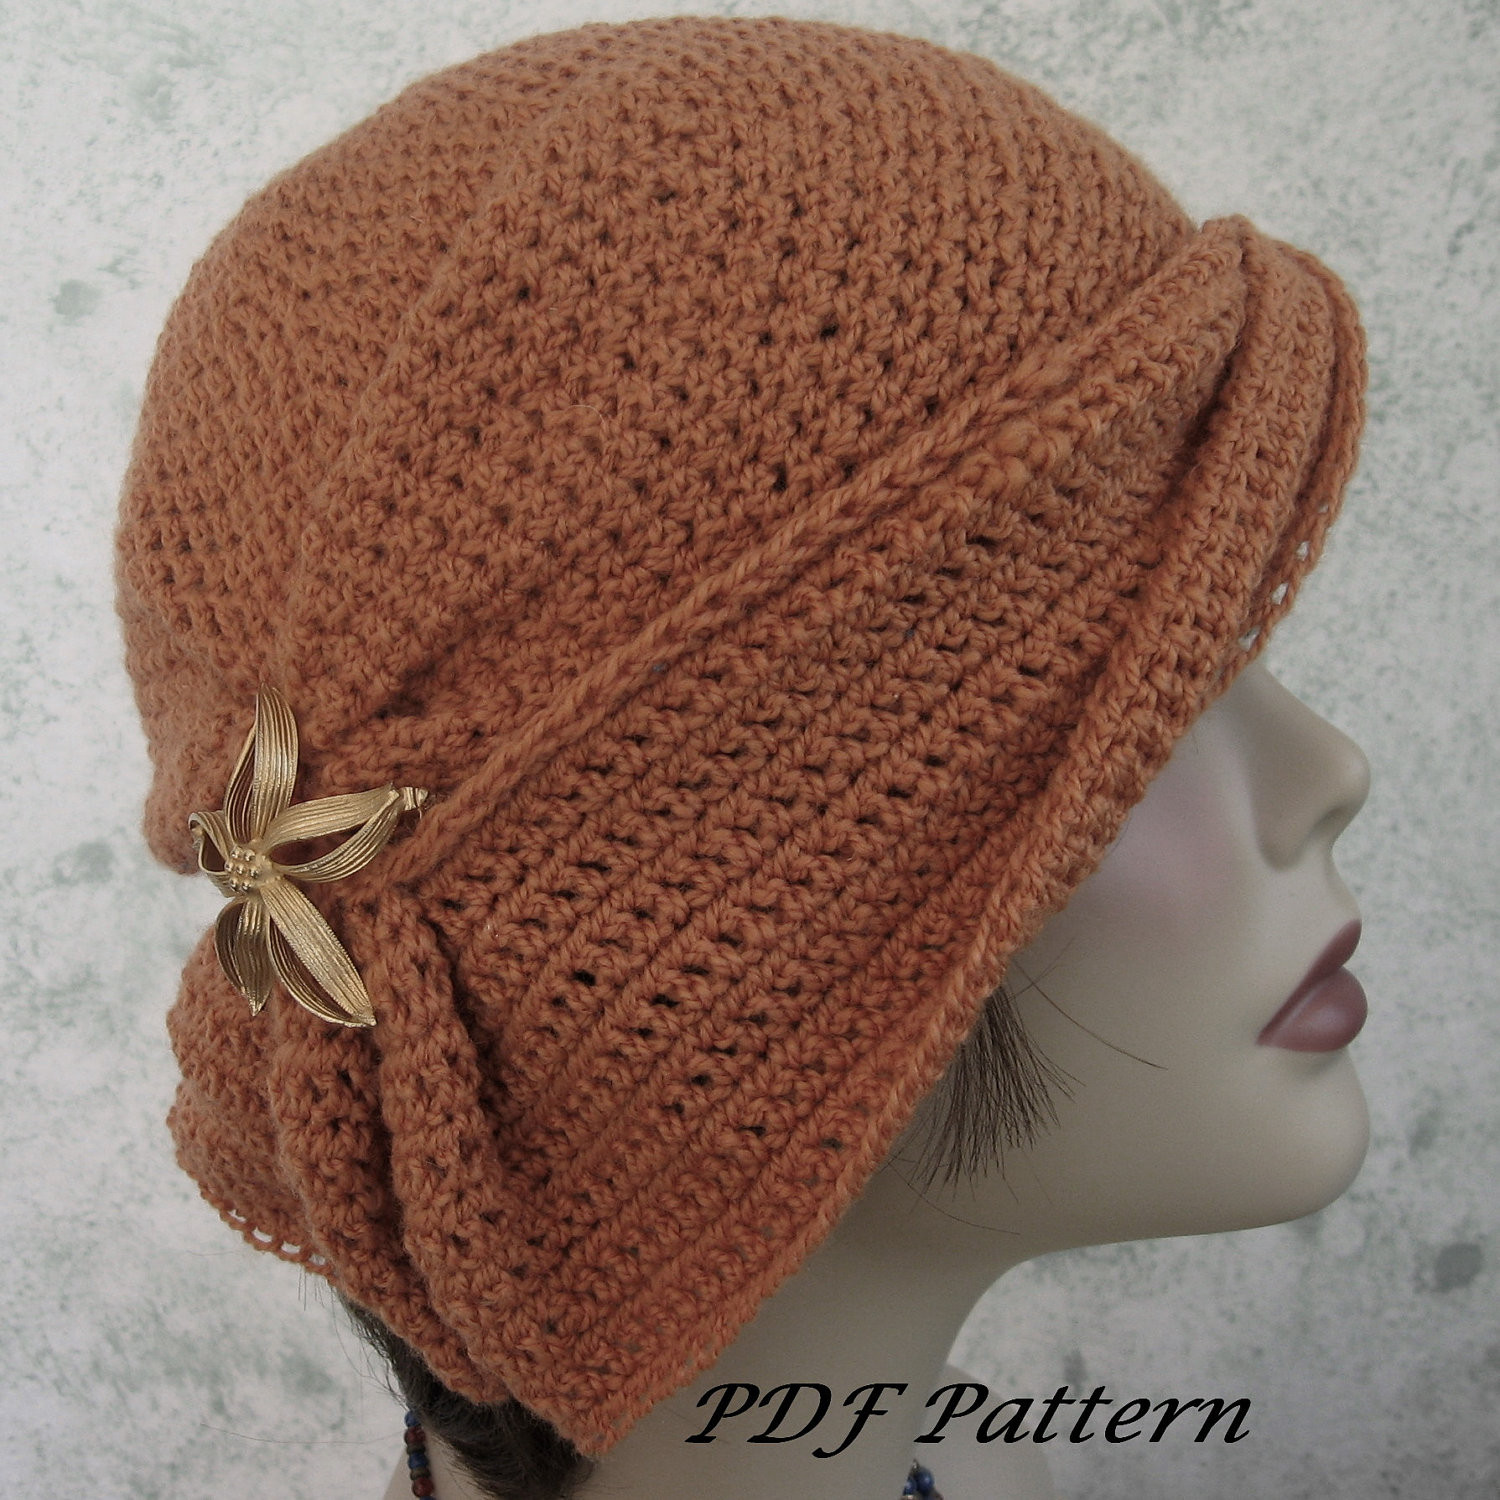 Free Crochet Hats Awesome Free Crochet Hat Patterns You Have Been Looking for Of Incredible 43 Photos Free Crochet Hats